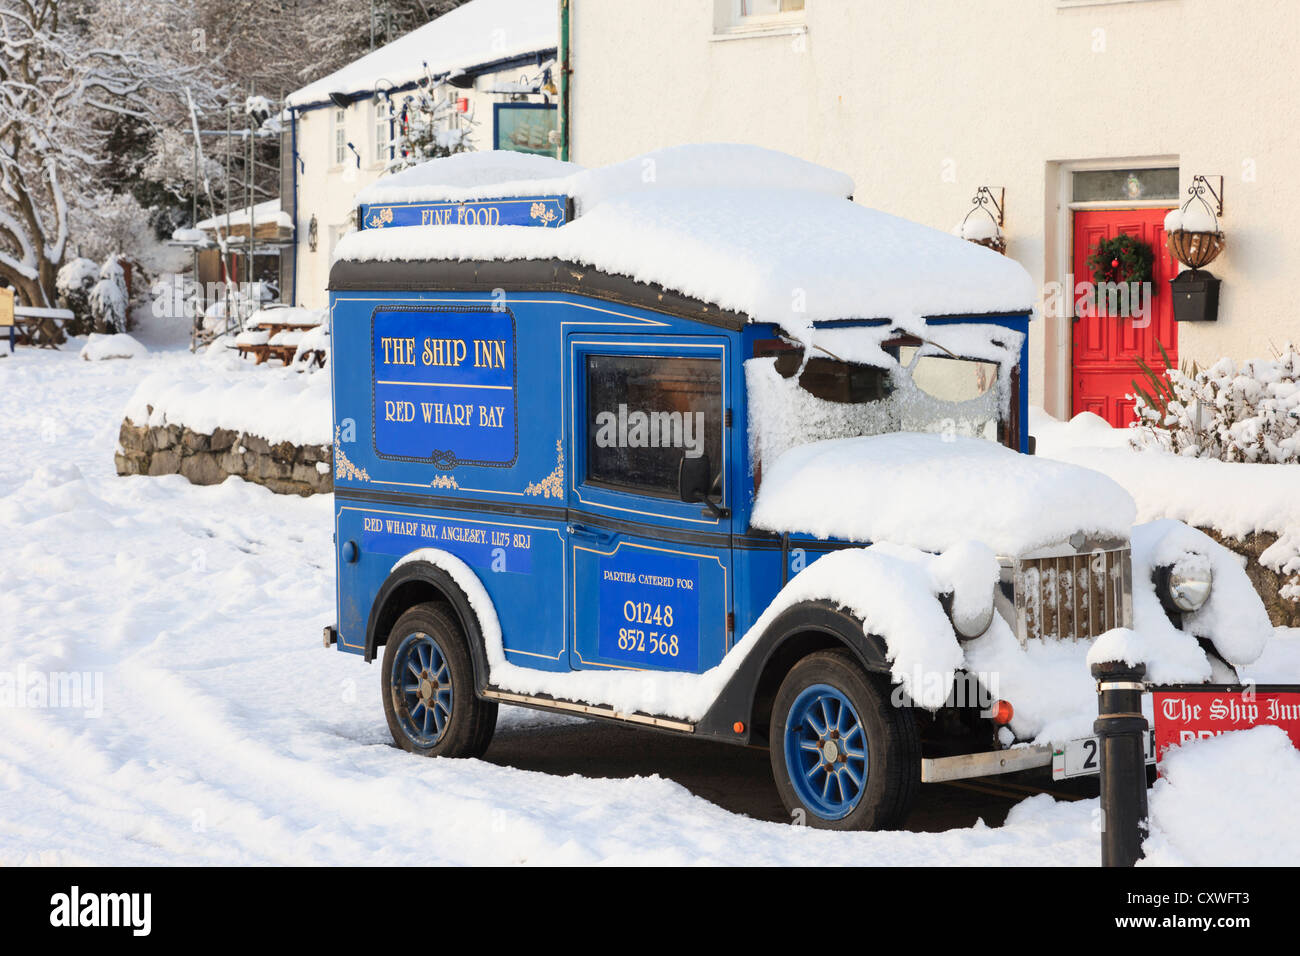 Vintage car advertising the Ship Inn village pub in winter snow in Red Wharf Bay, Isle of Anglesey, North Wales, - Stock Image